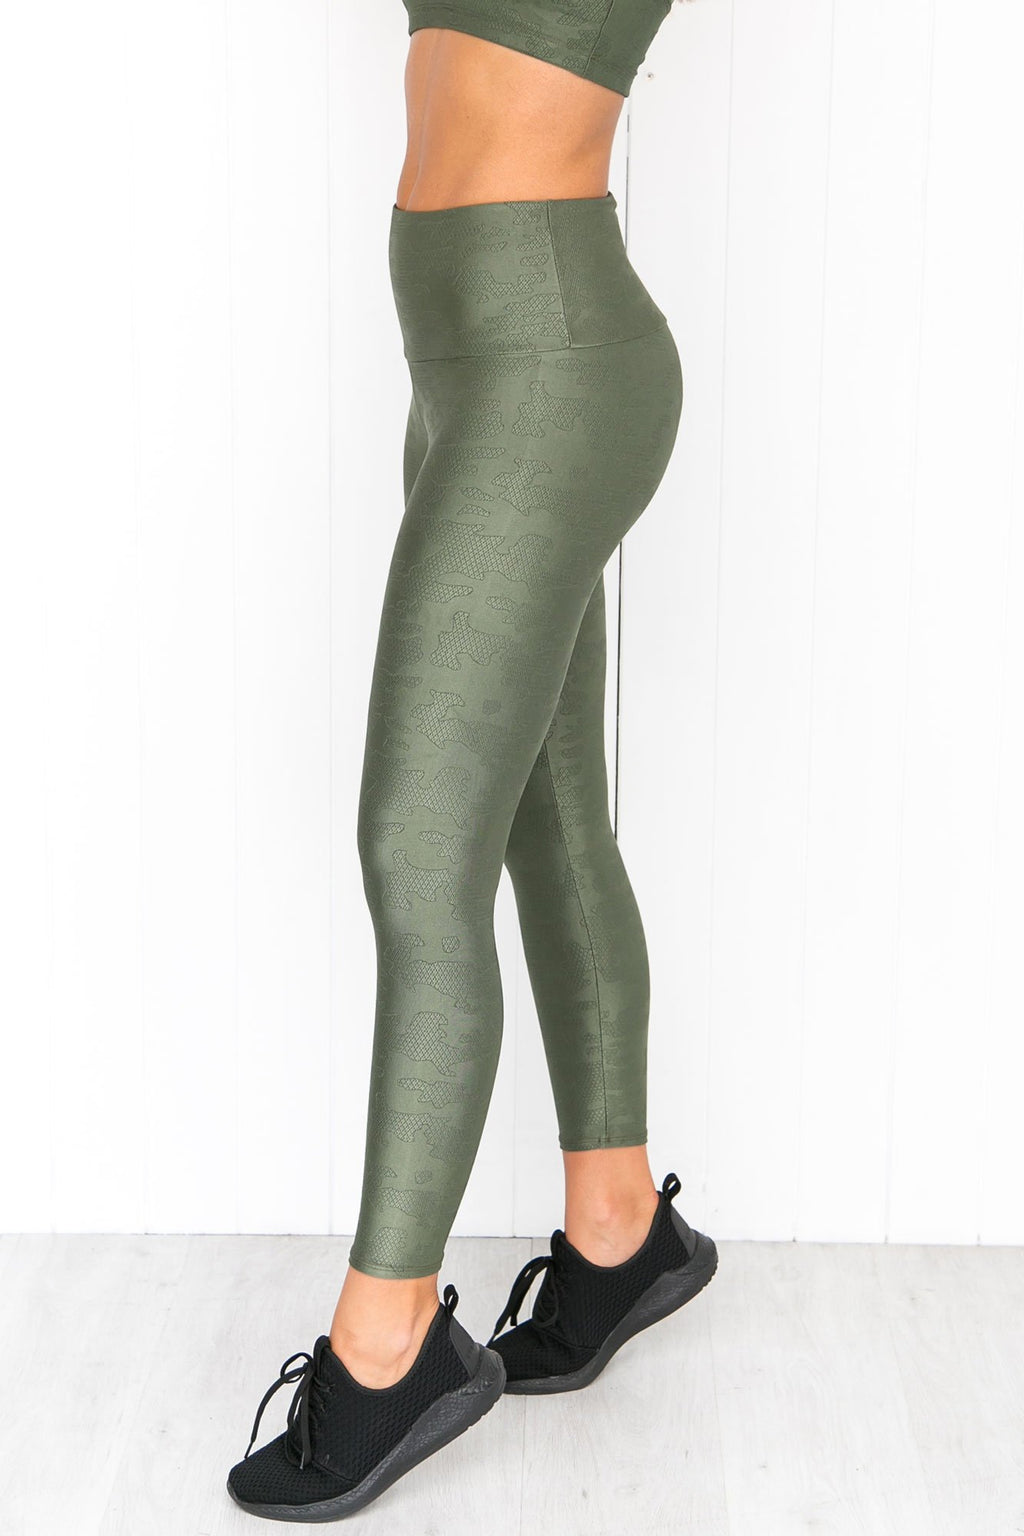 Jacquard Midi Leggings - Olive Twist - PURE DASH